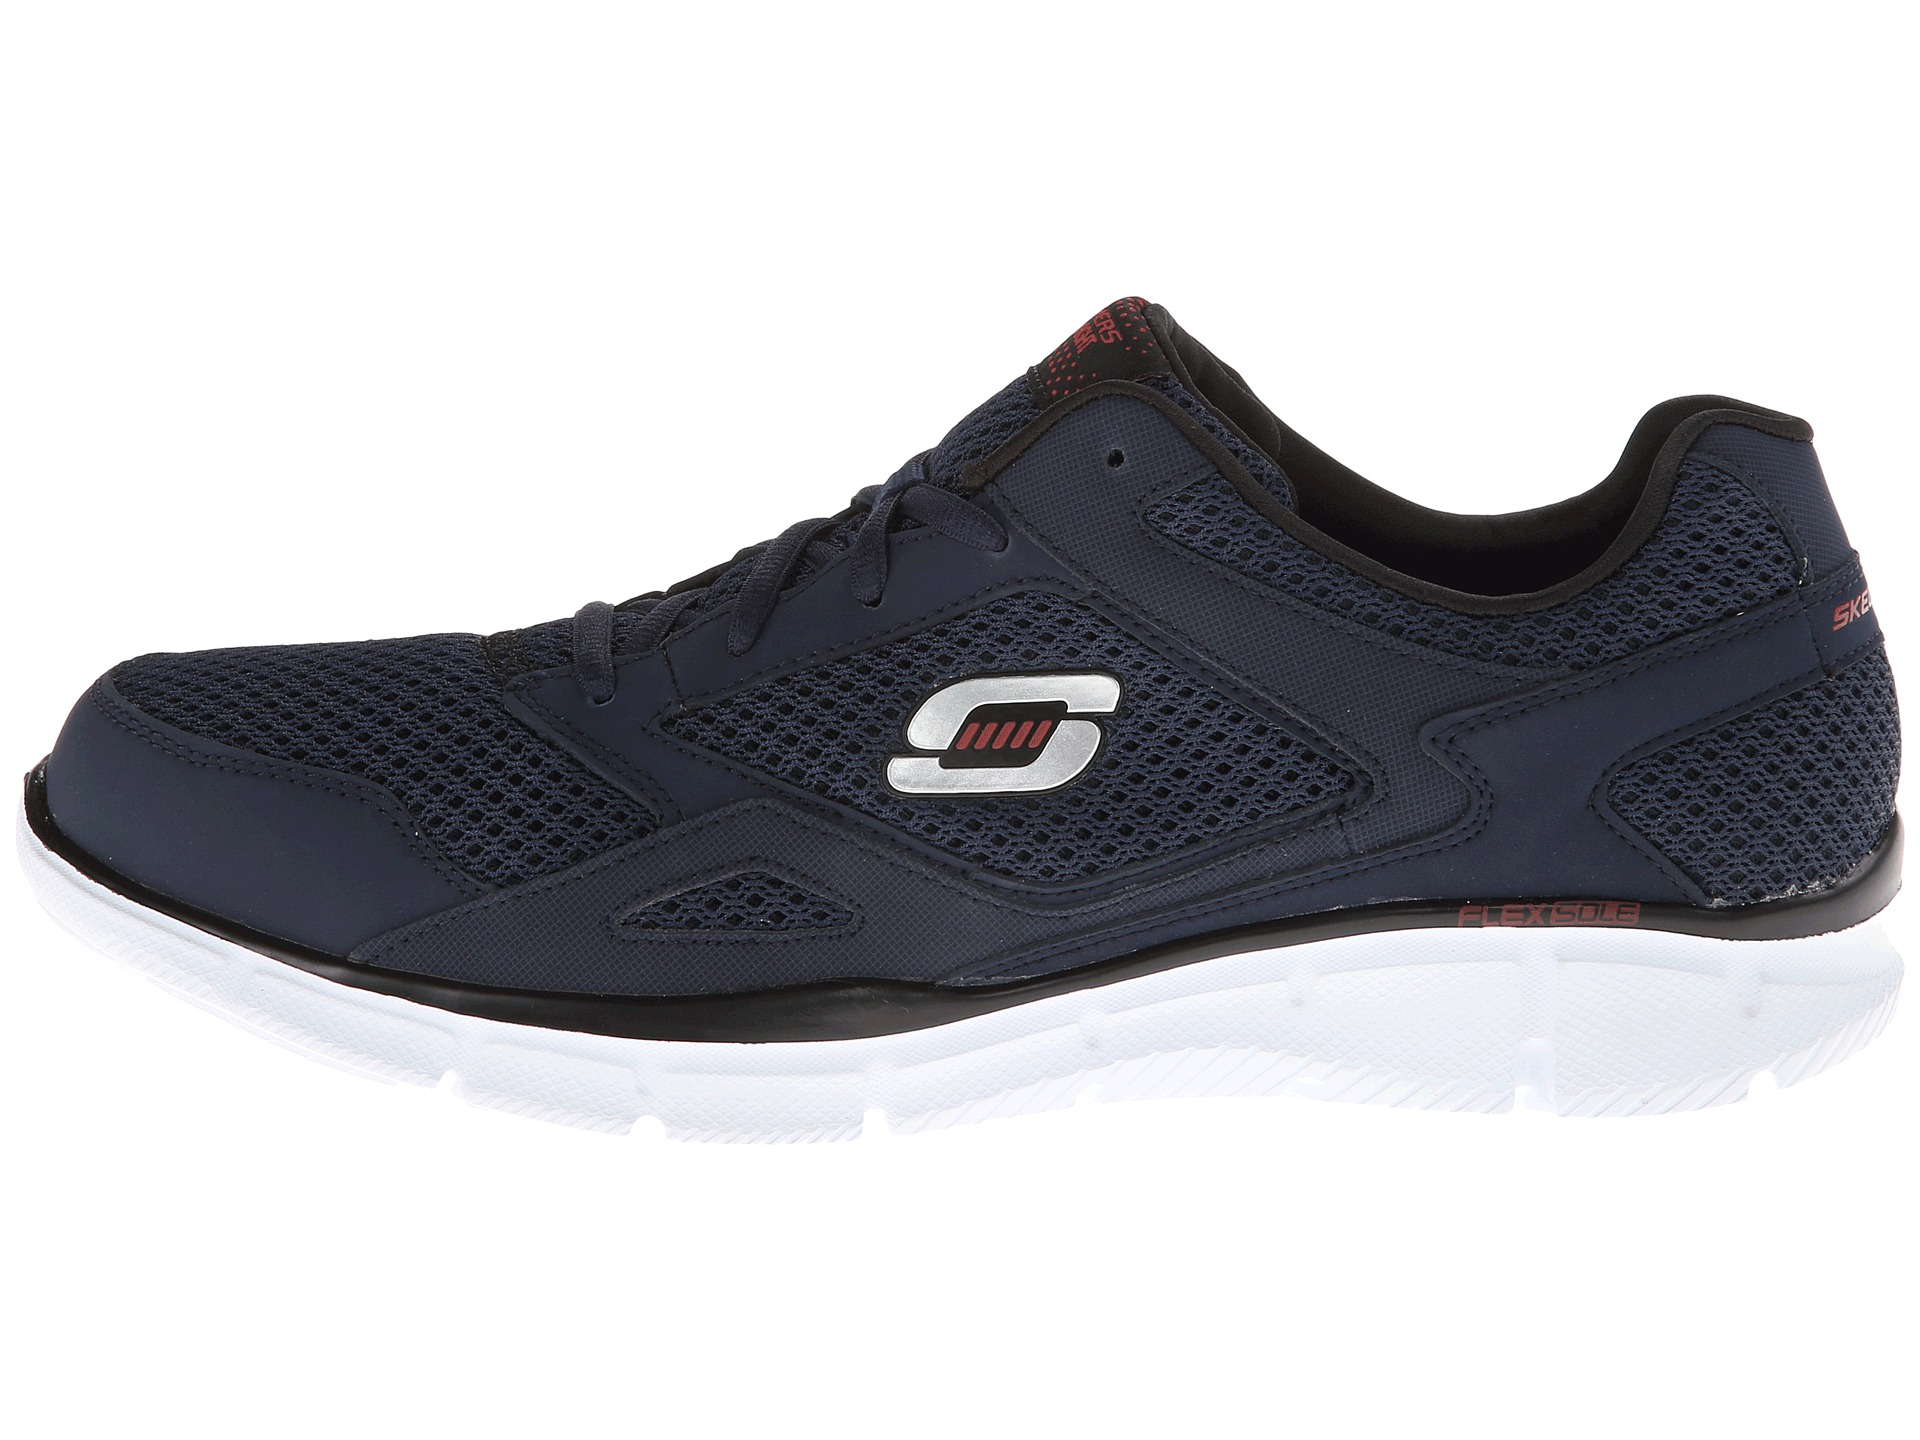 Skechers Cool Memory Foam Shipped Free At Zappos